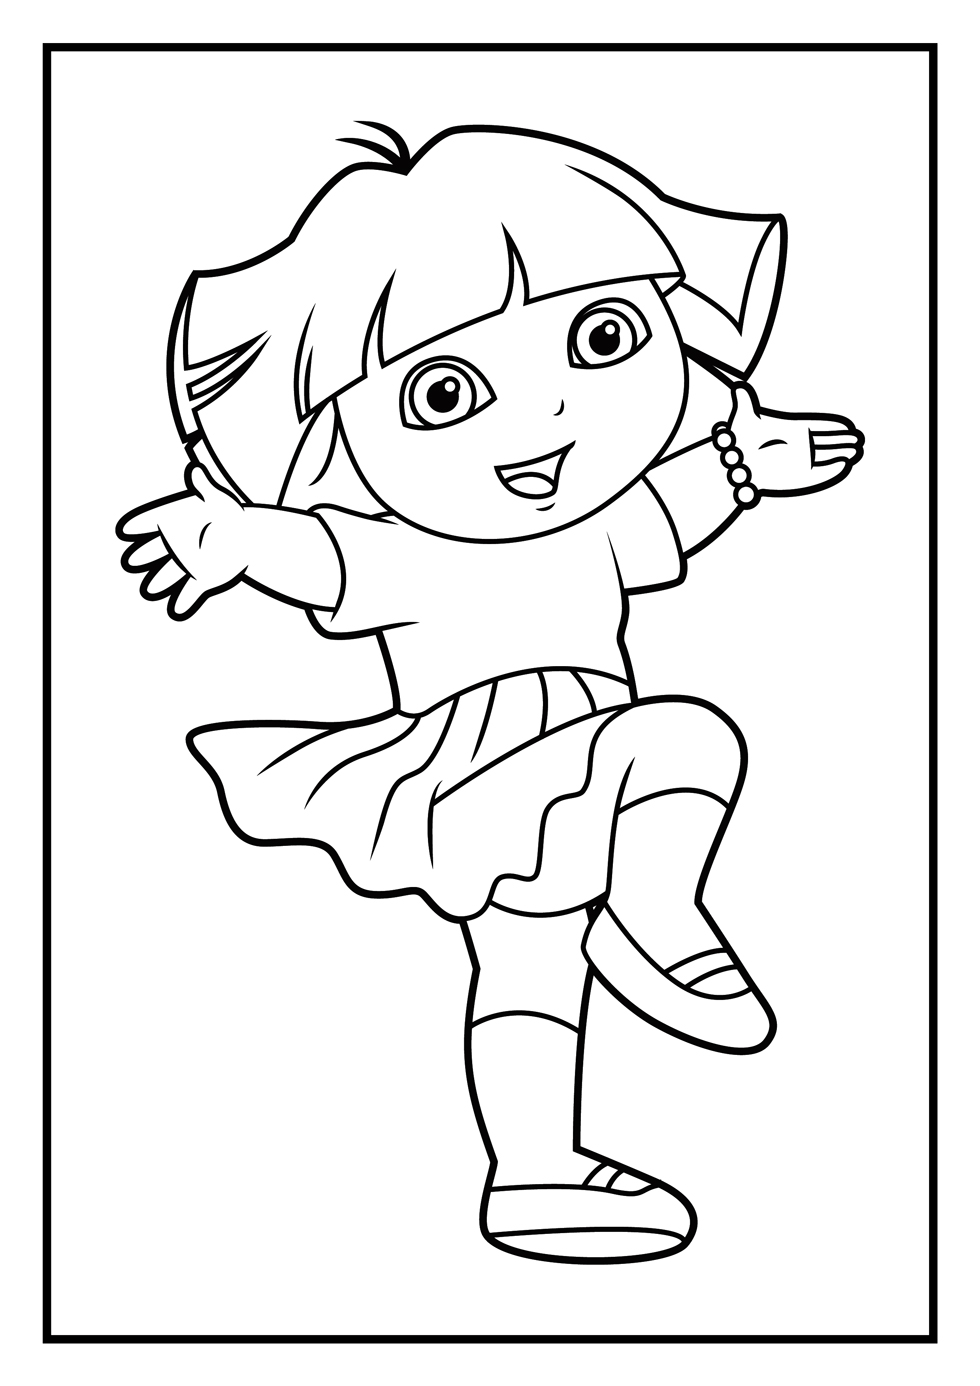 dora coloring dora colouring pictures coloring pages to print dora coloring